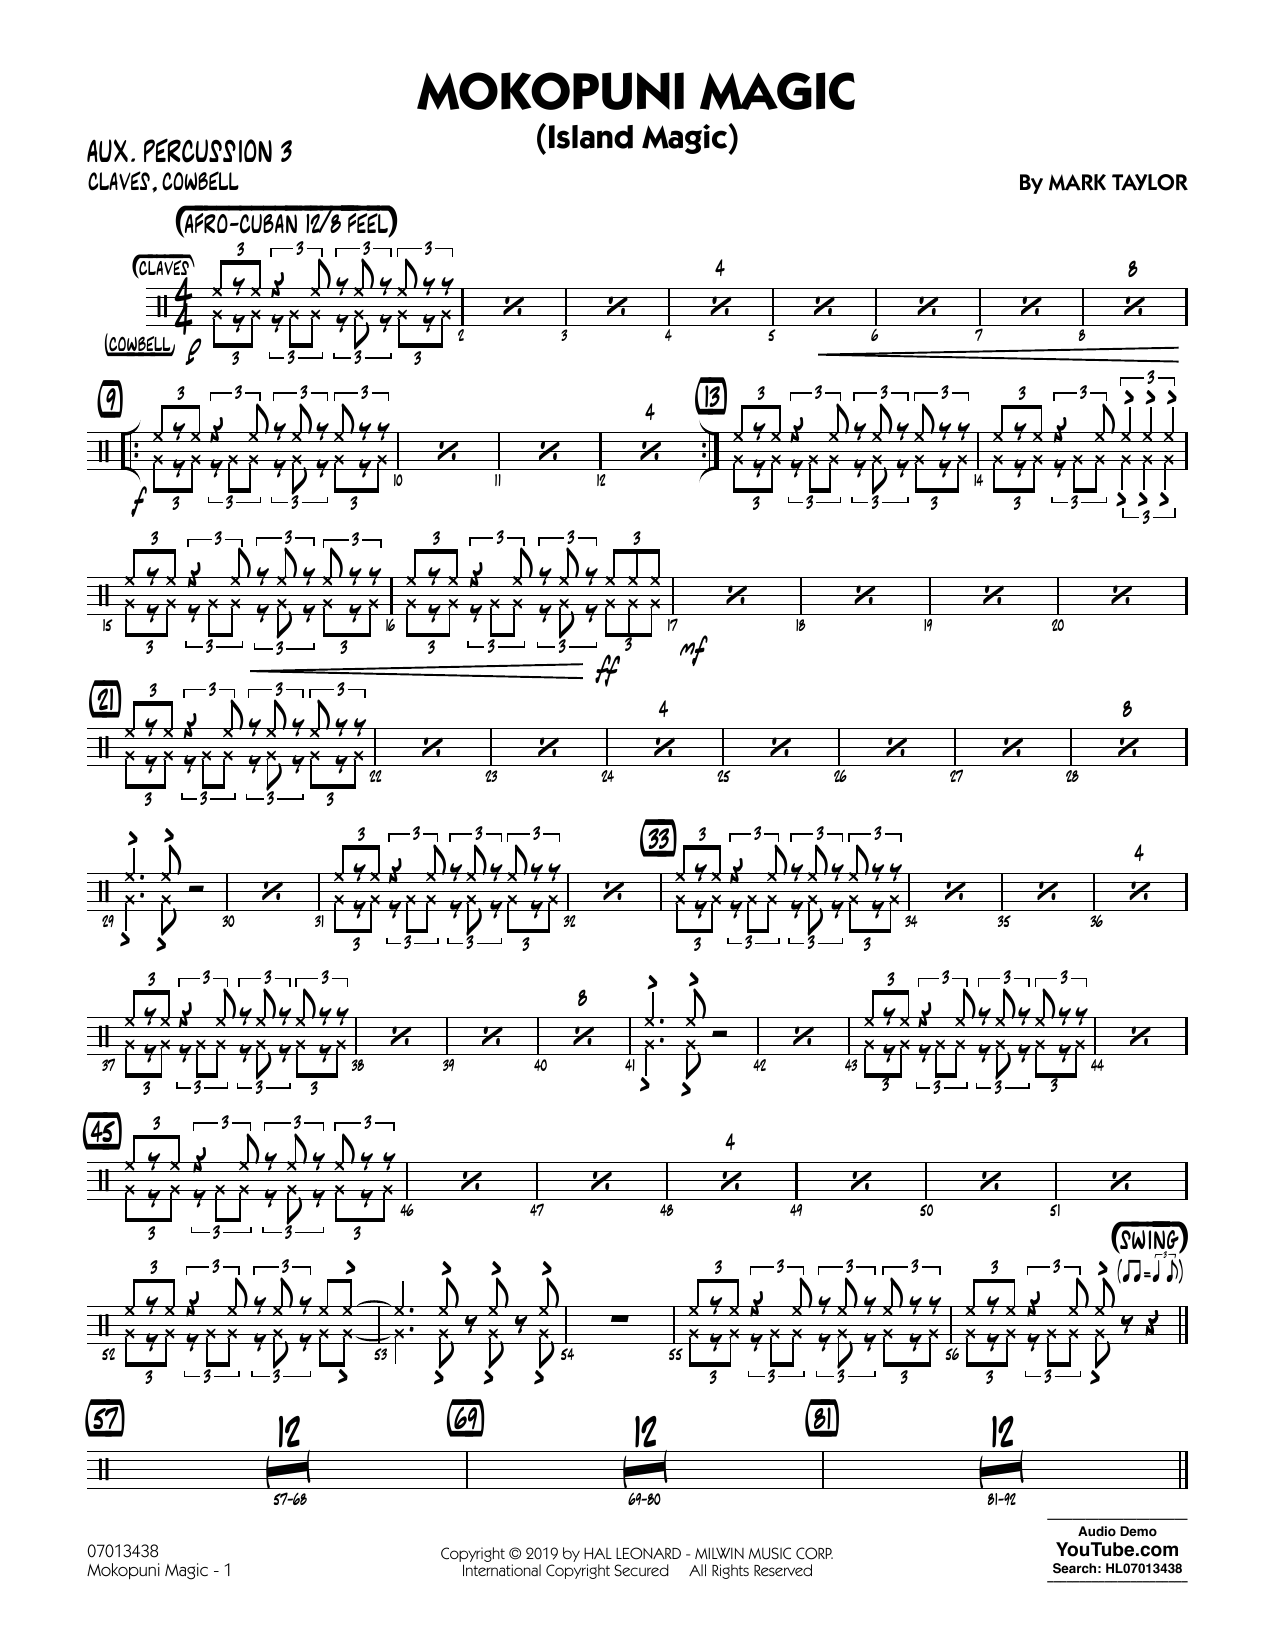 Mark Taylor Mokopuni Magic (Island Magic) - Aux. Percussion 3 sheet music notes and chords. Download Printable PDF.